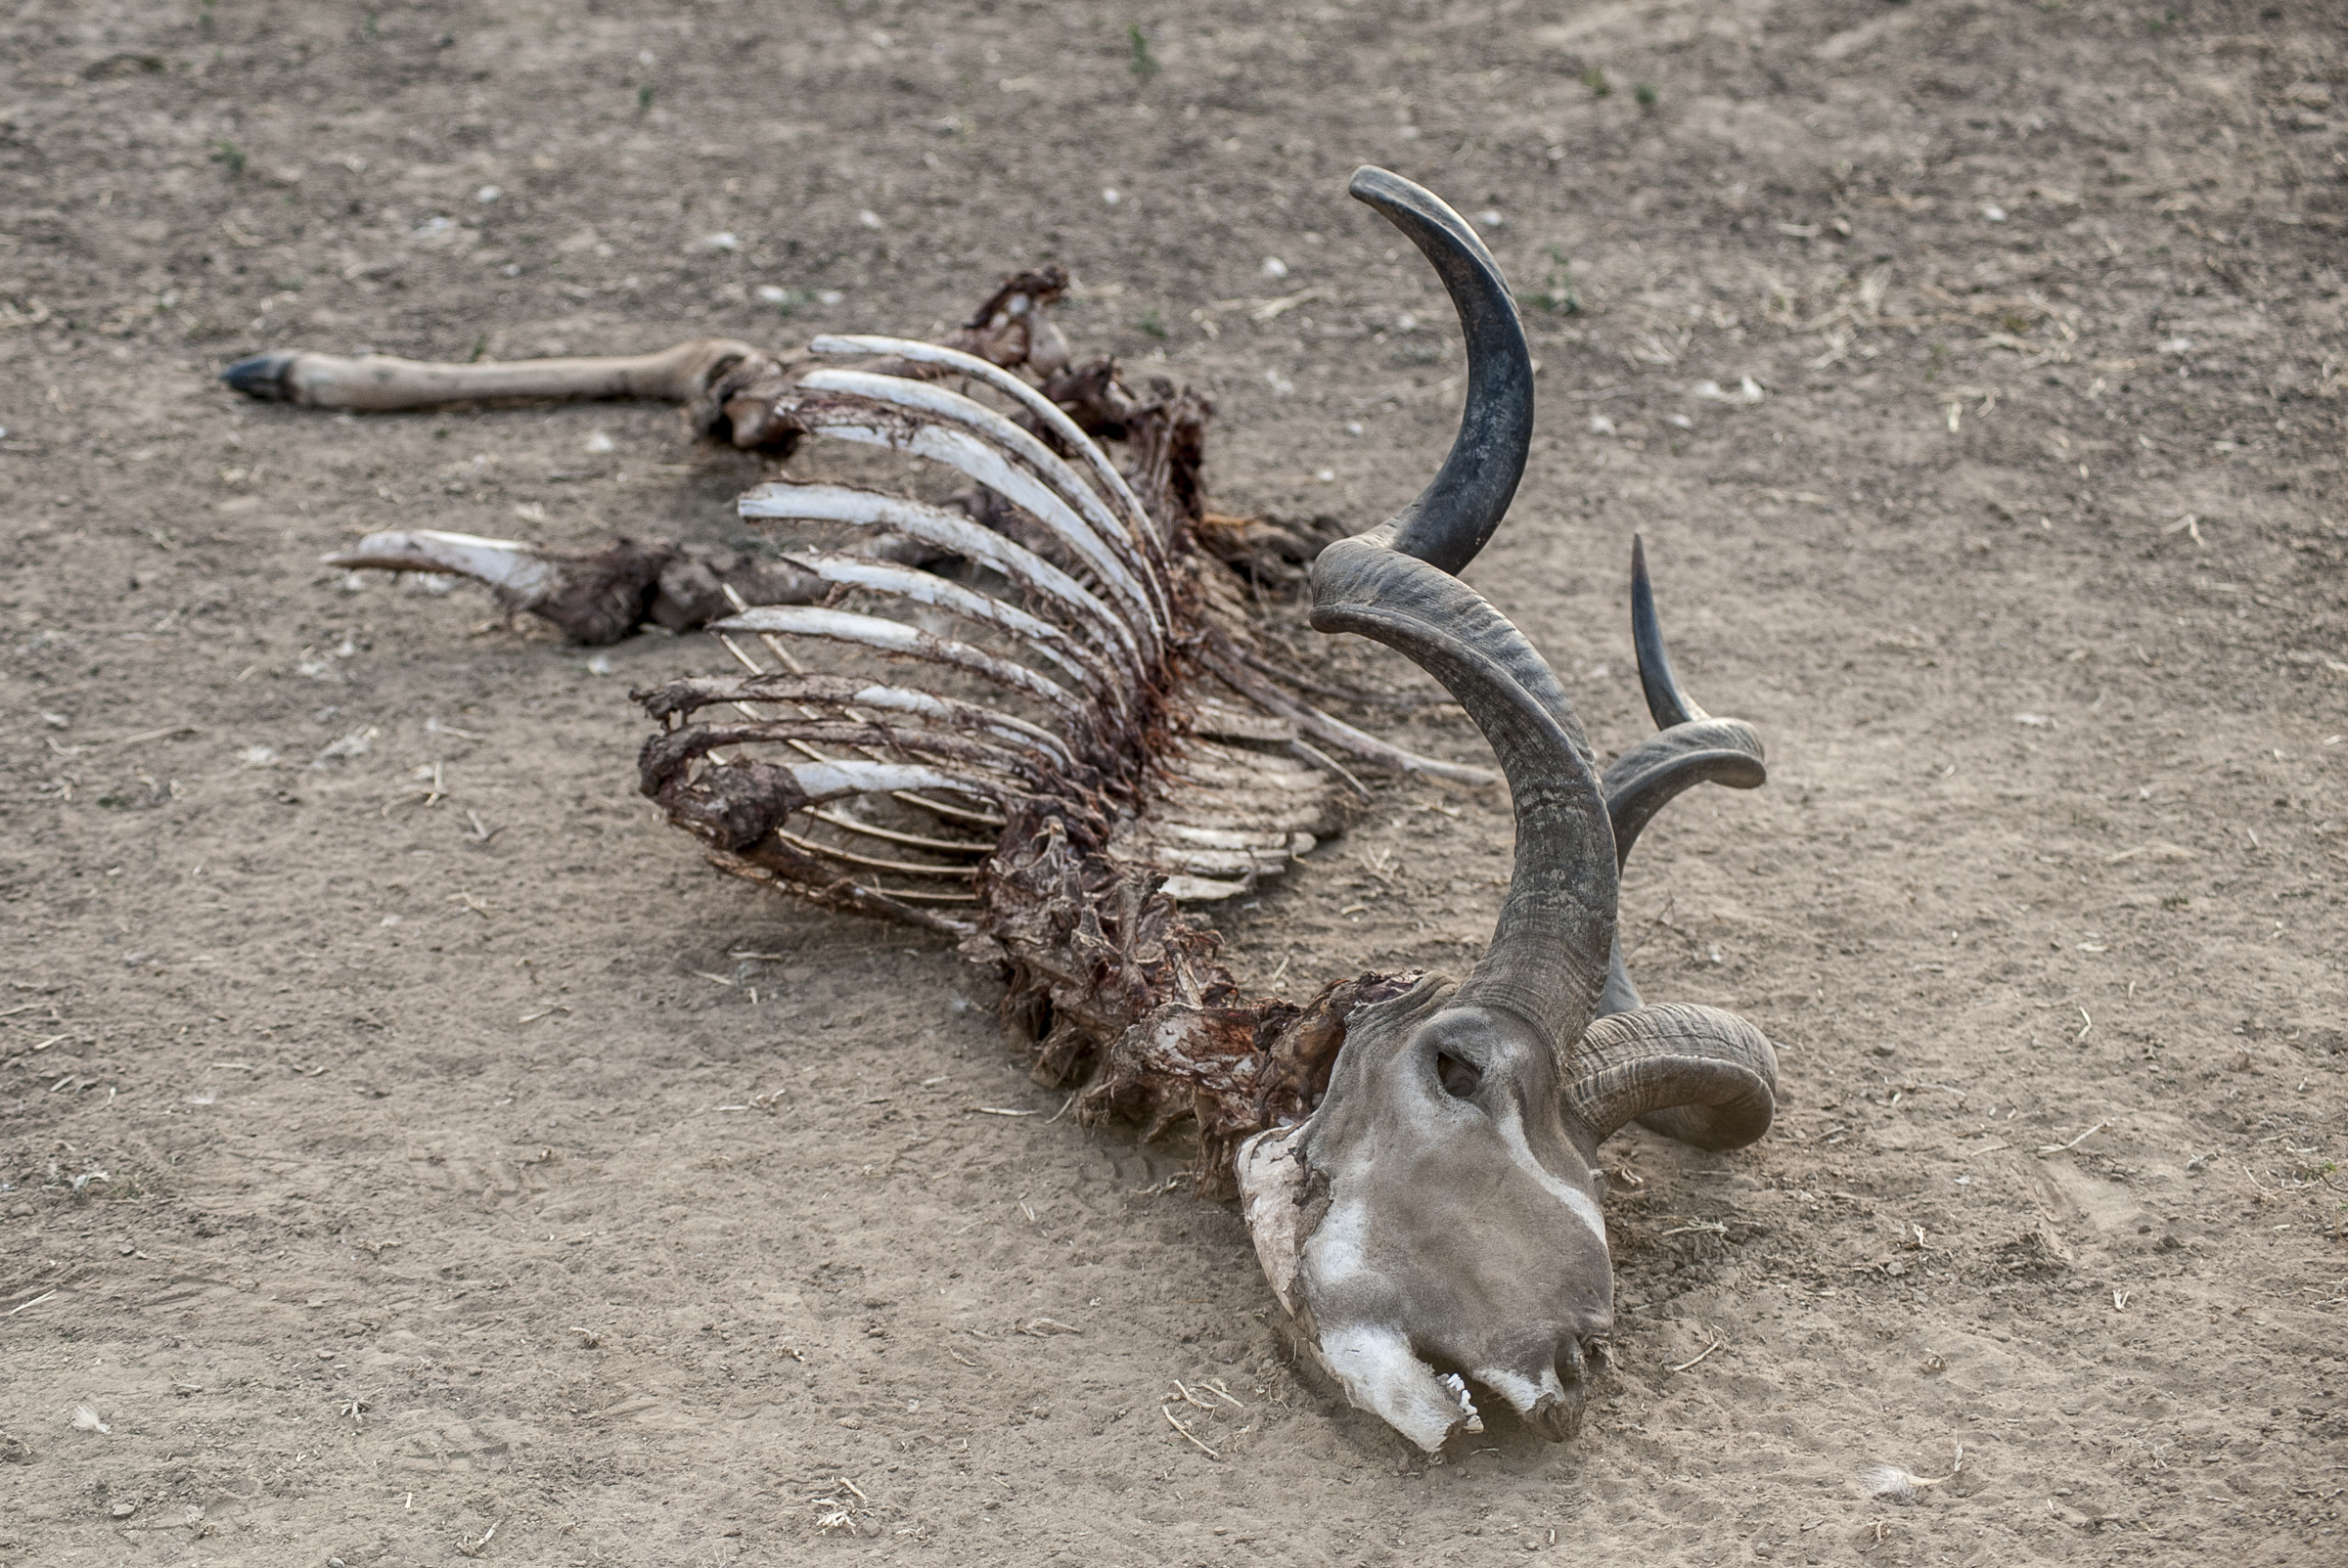 A kudu carcass picked clean, photo by Anton Crone